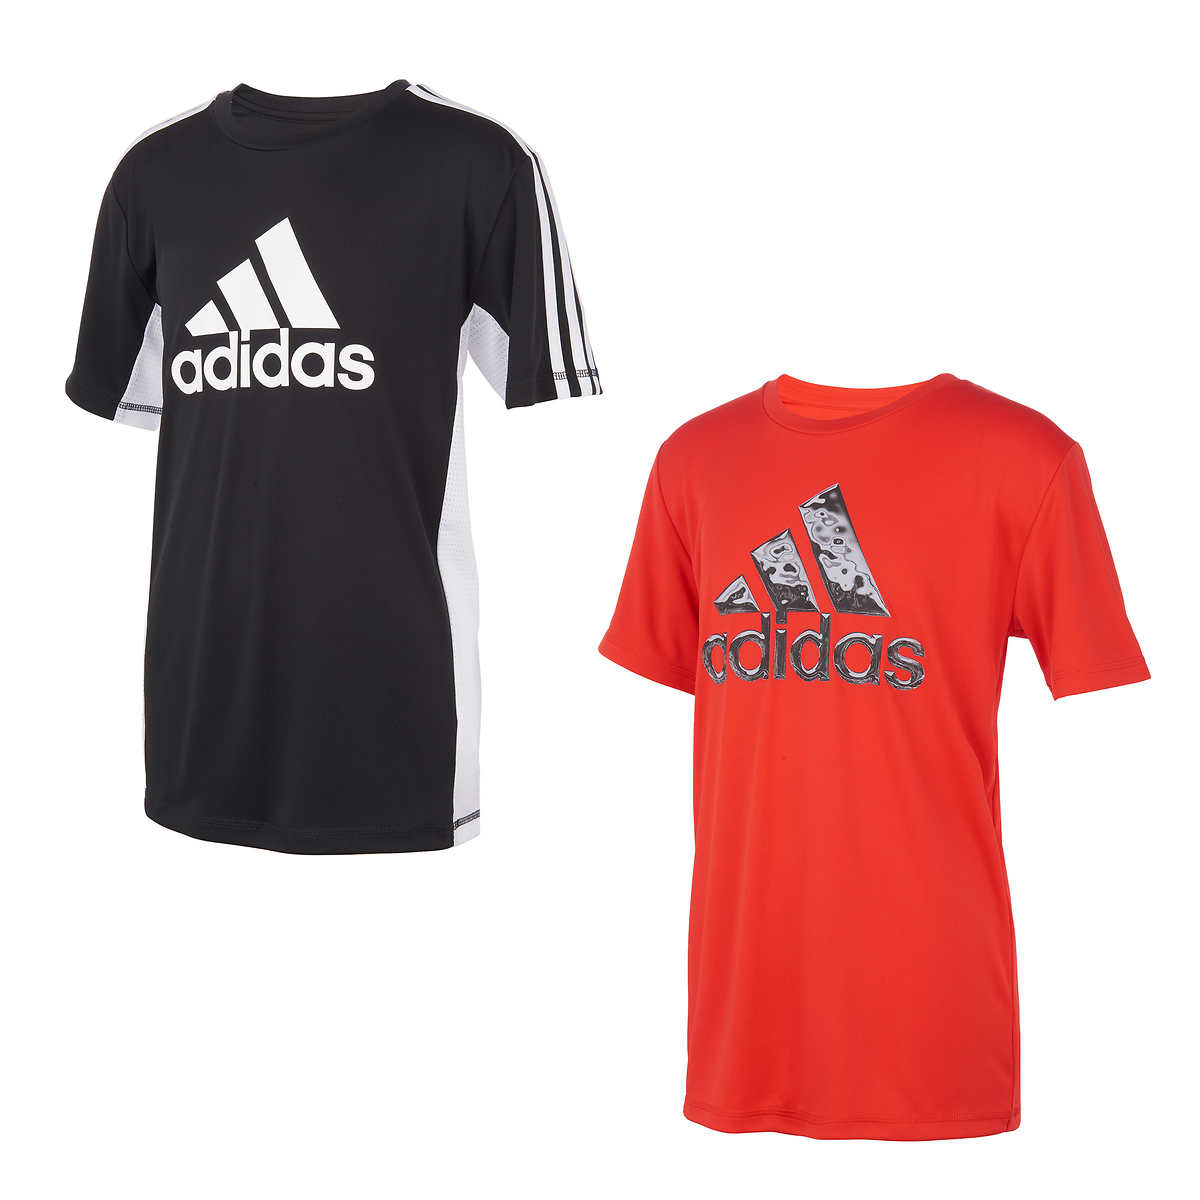 adidas Youth 2-pack Performance Tee, Black and Red | Costco